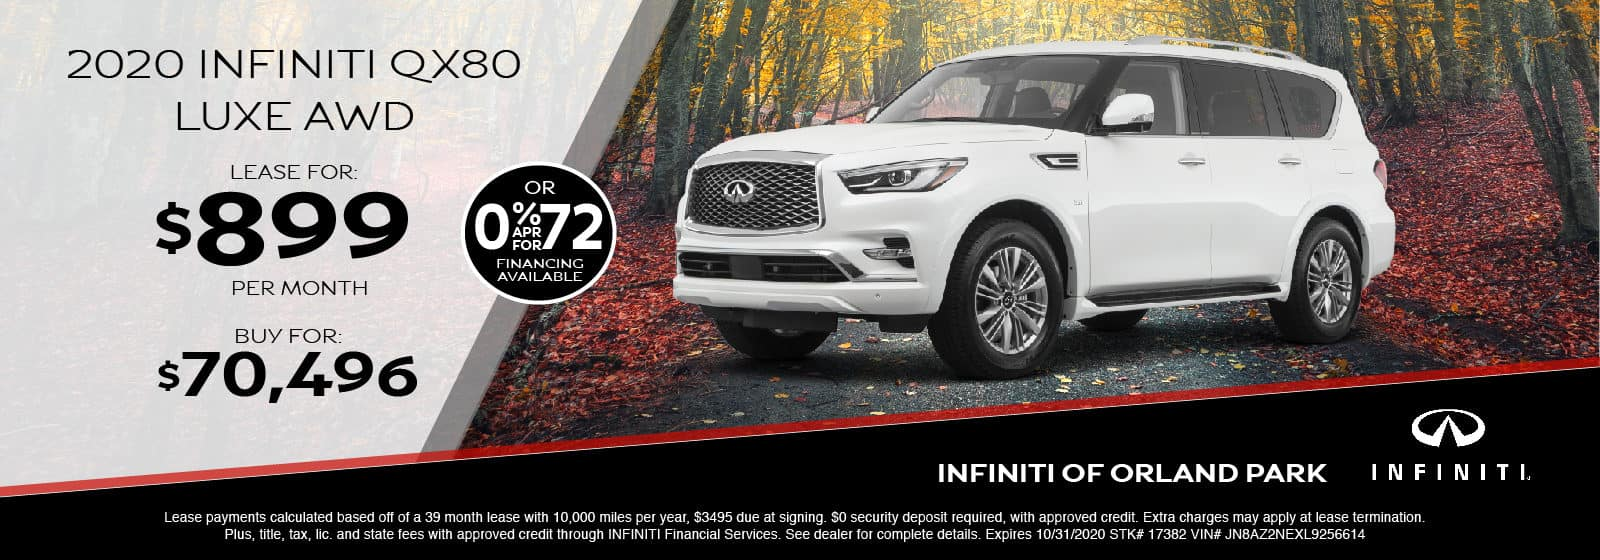 Lease a new 2020 QX80 for $899/month